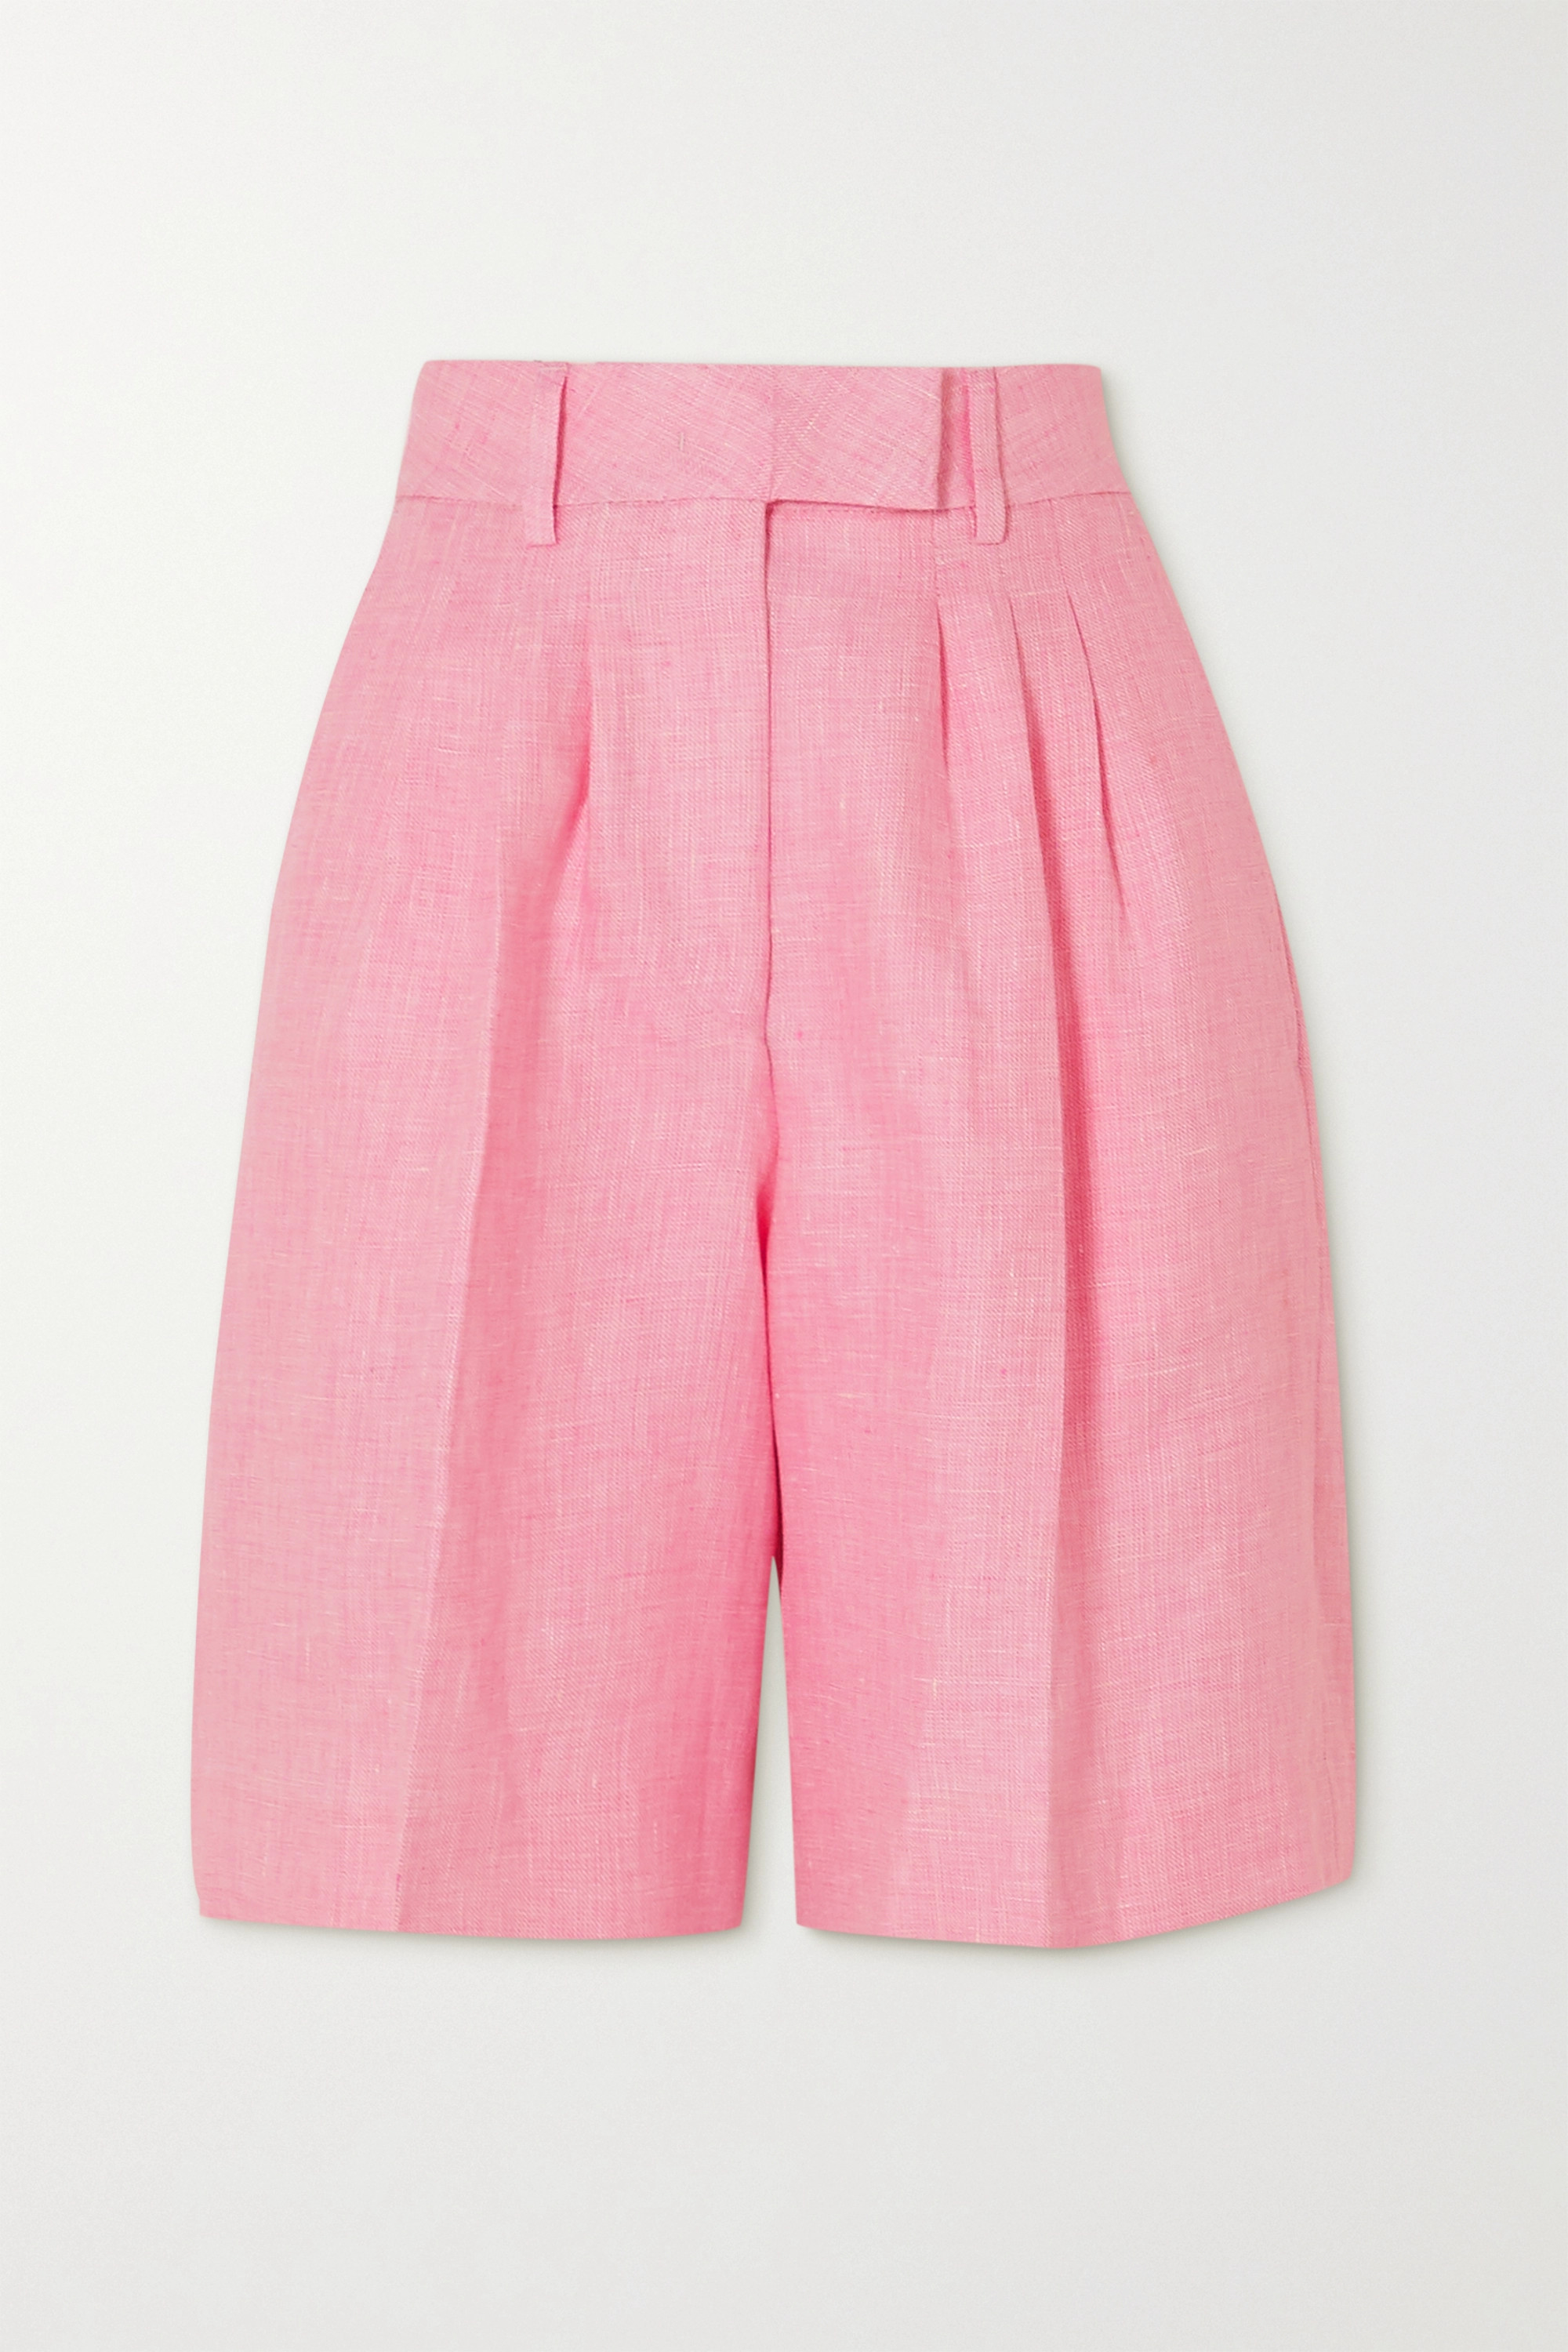 REMAIN Birger Christensen Kit linen shorts